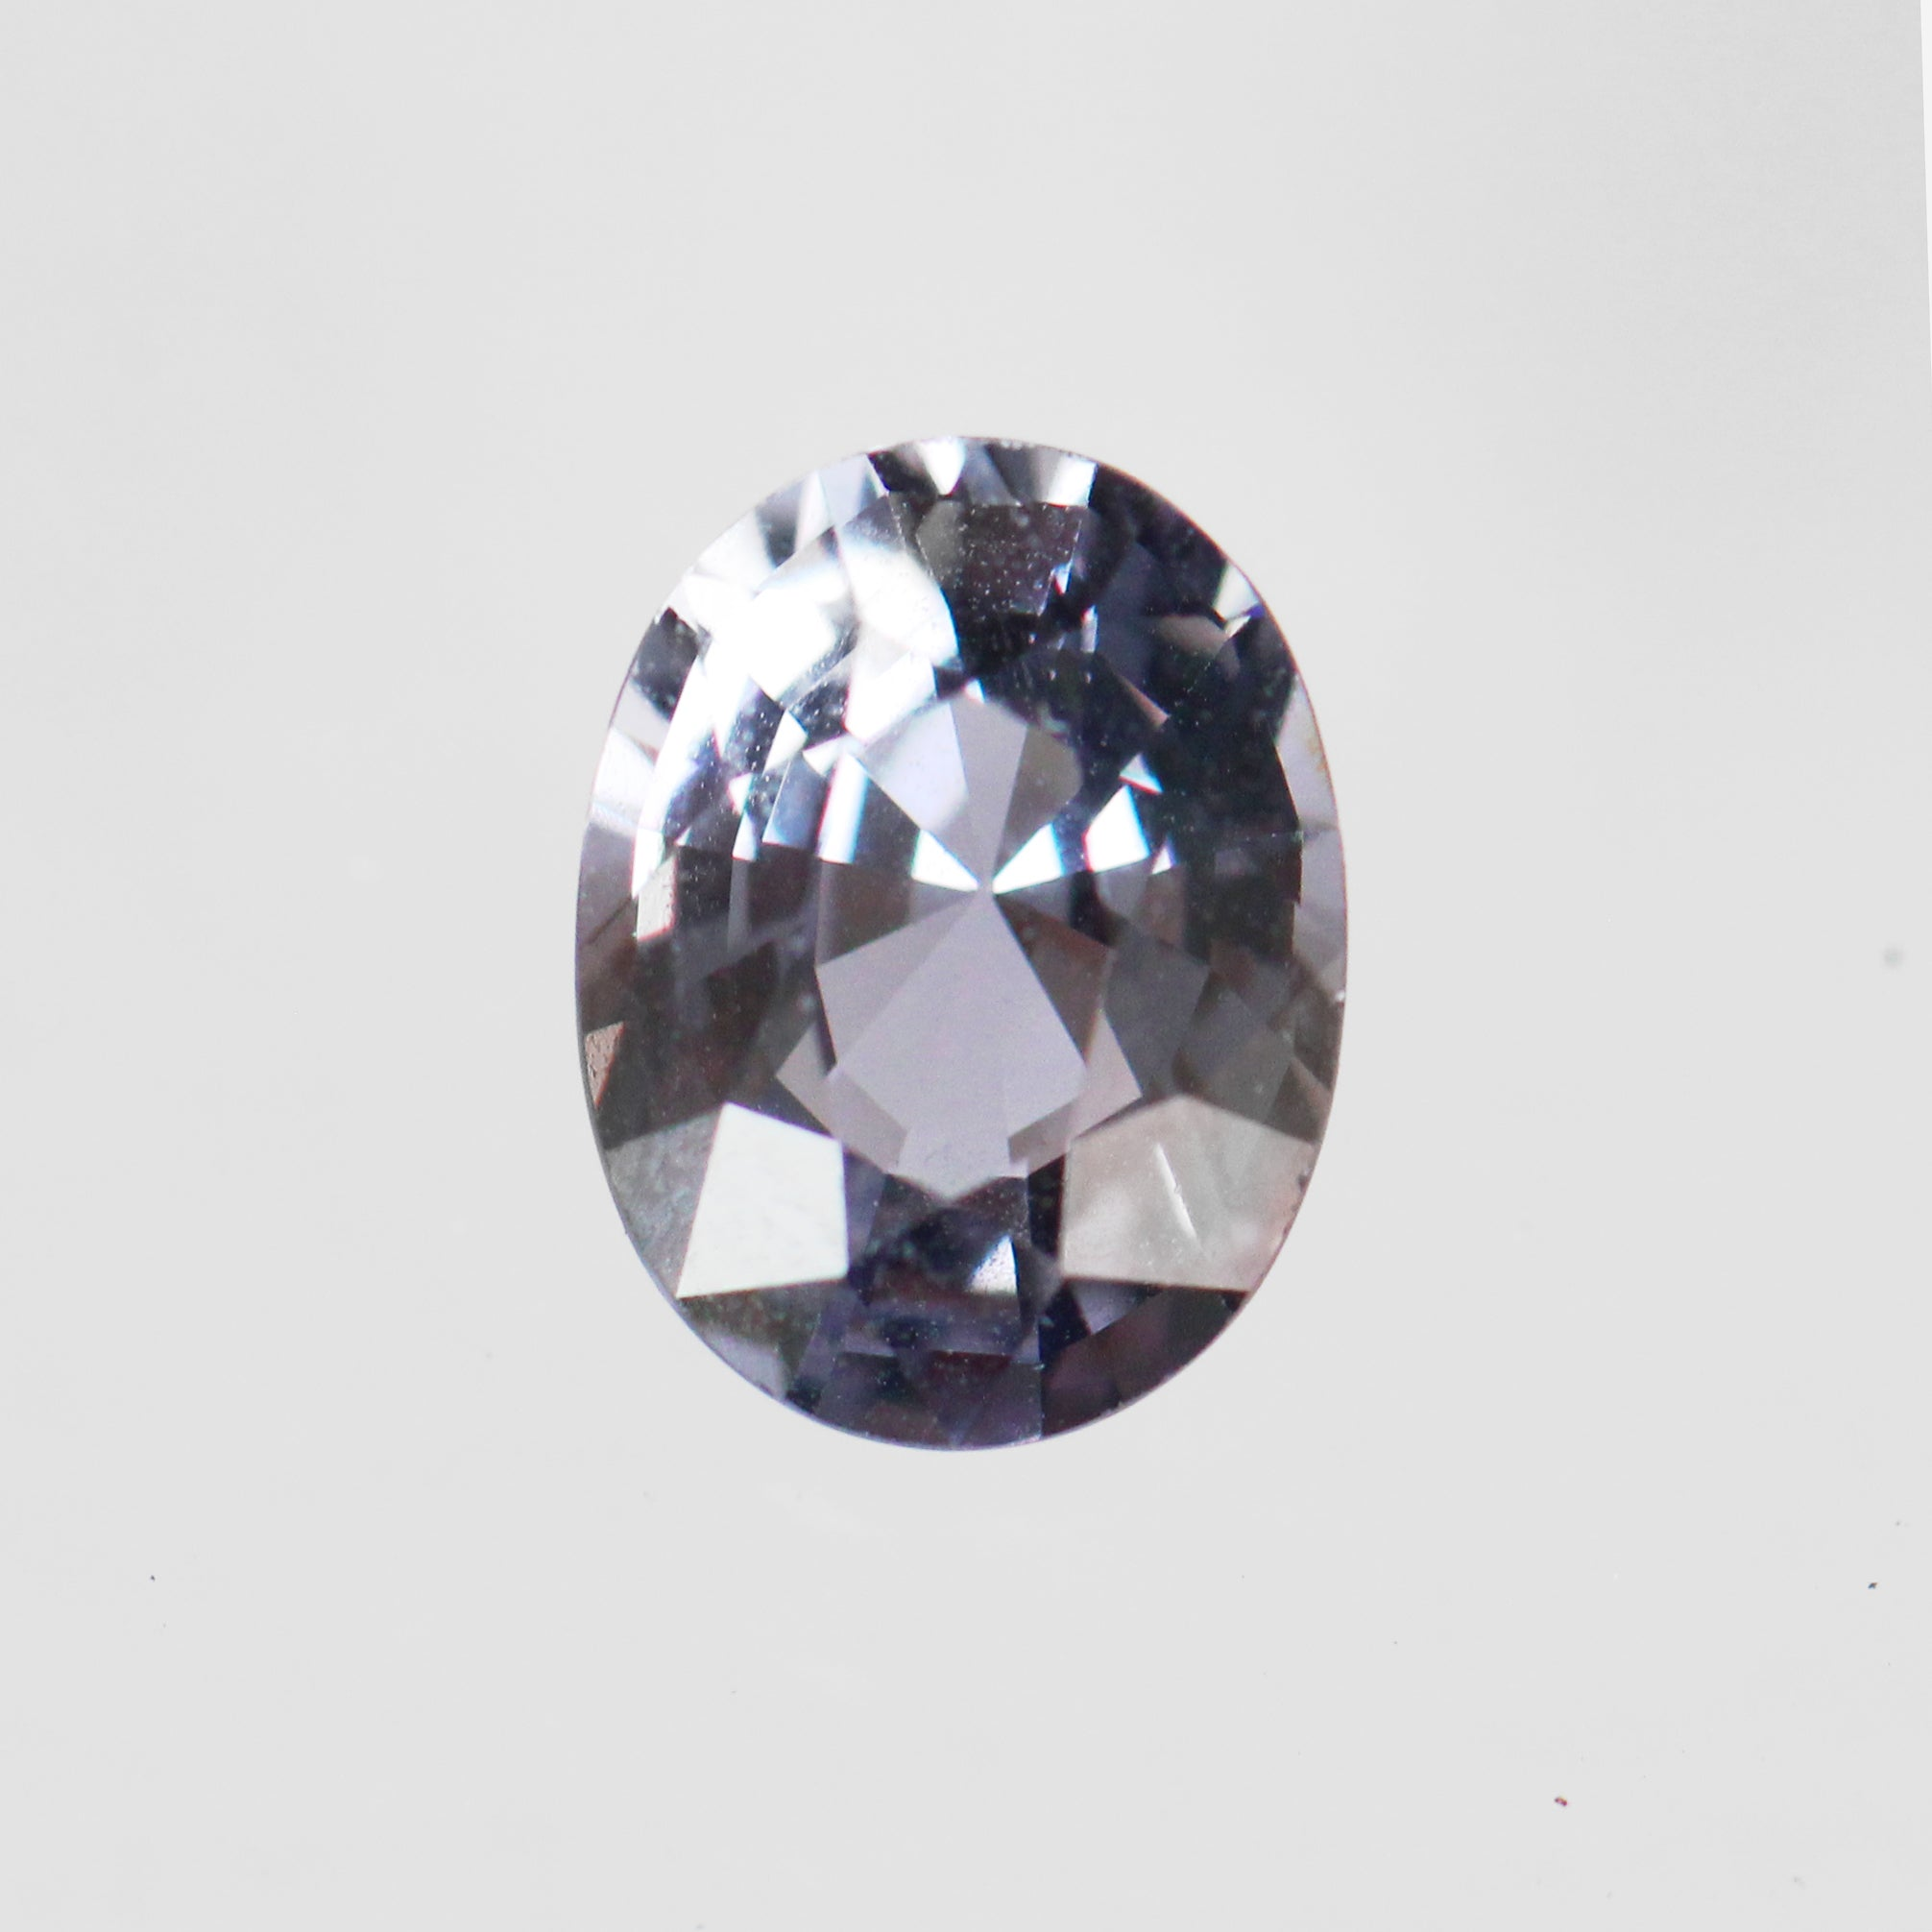 2.03 Carat Oval Sapphire - Inventory Code OBS203 - Celestial Diamonds ® by Midwinter Co.